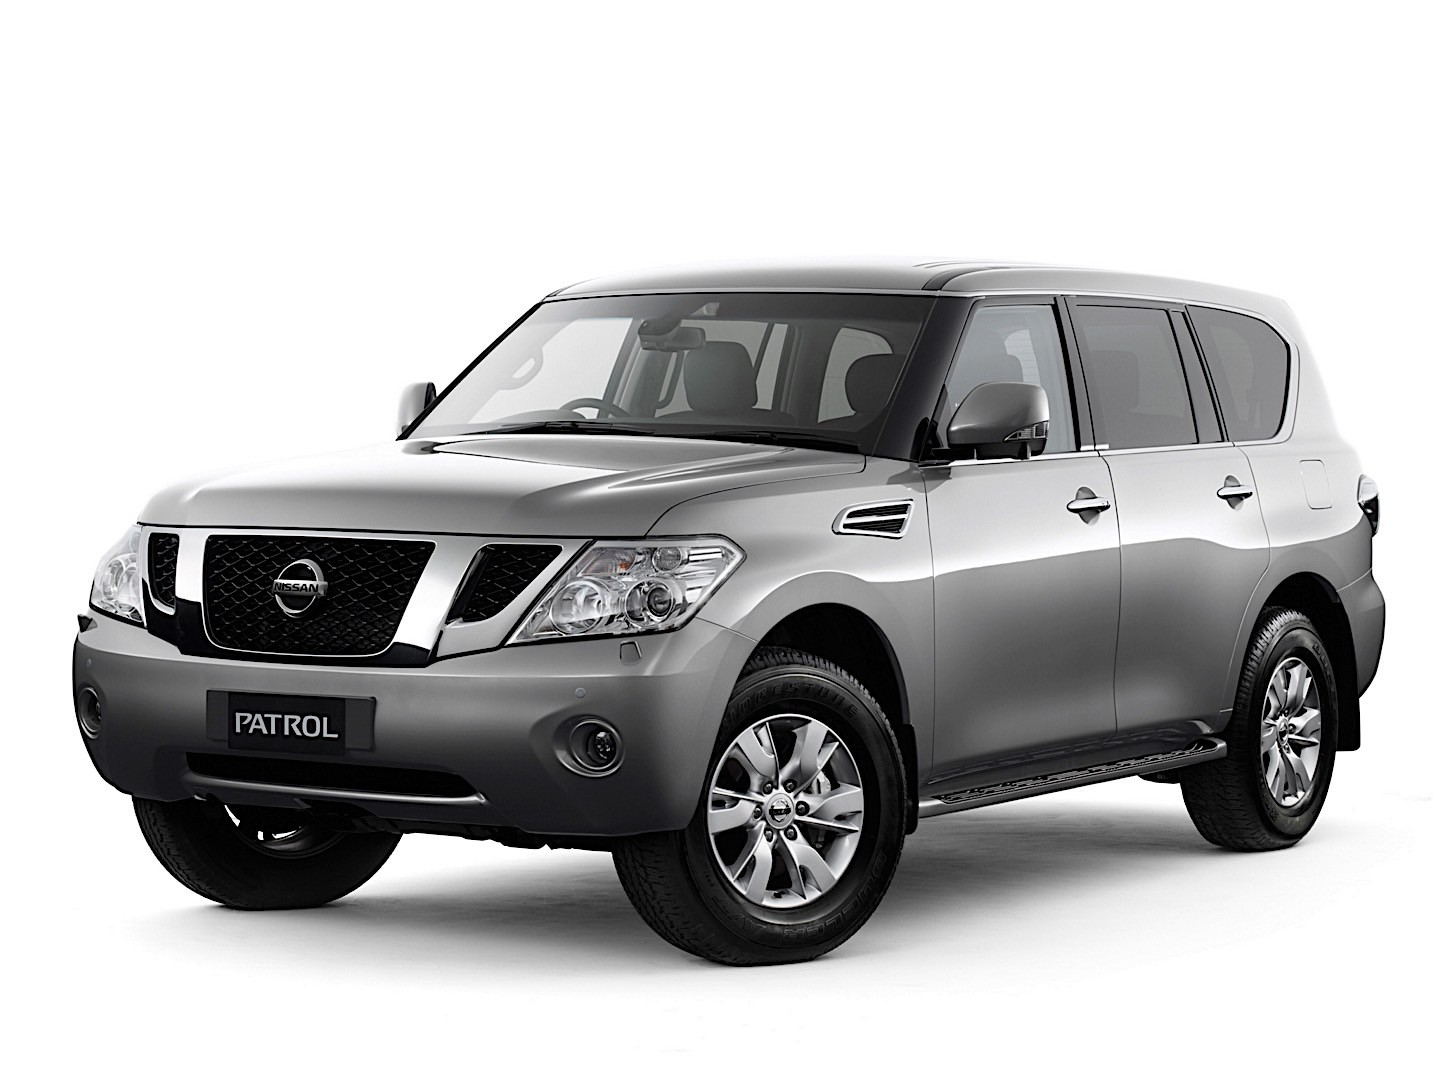 nissan patrol 2010 2011 2012 2013 2014 autoevolution. Black Bedroom Furniture Sets. Home Design Ideas